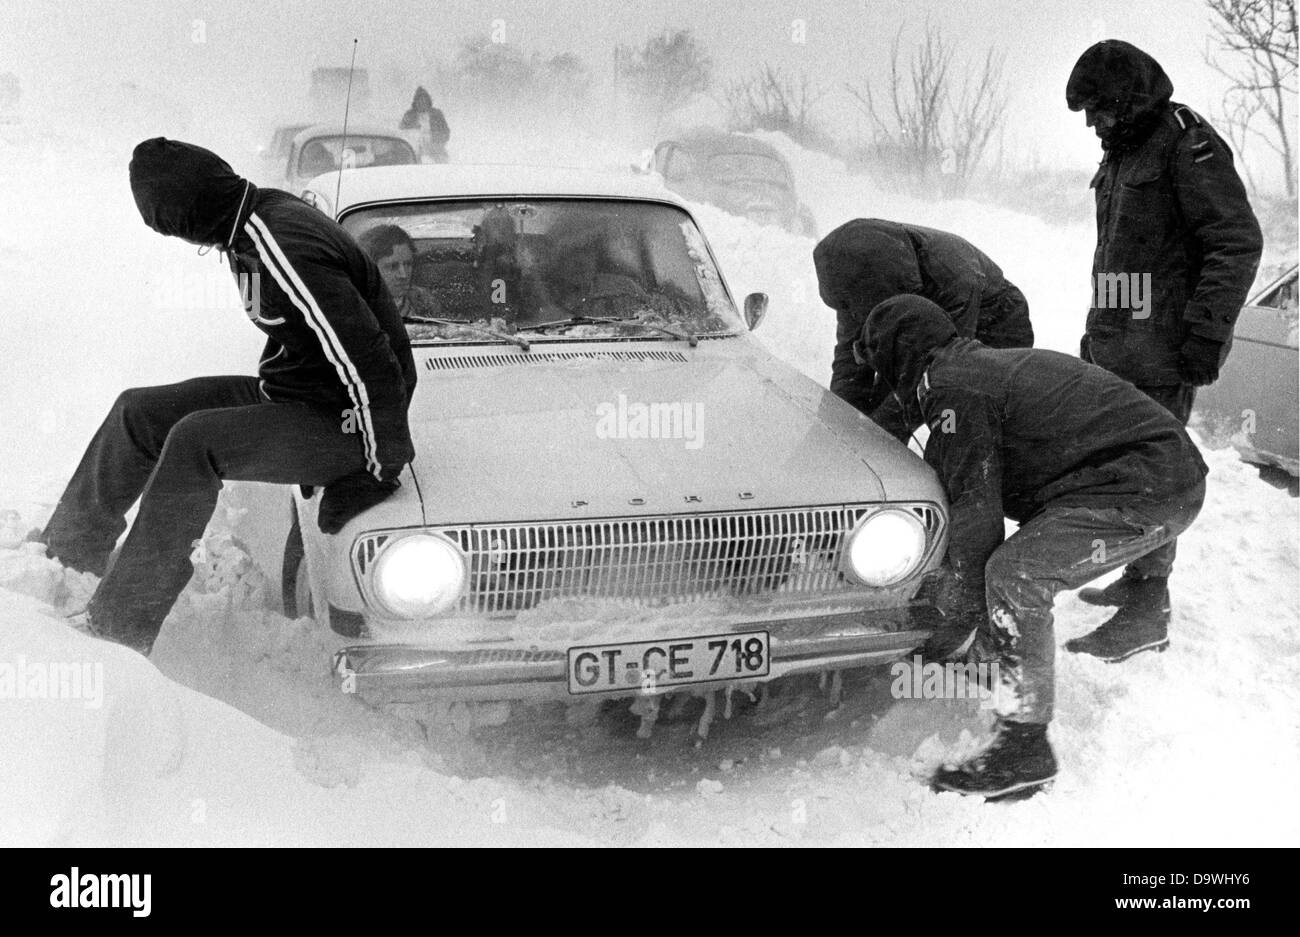 Soldiers of the Federal German Forces help a stuck driver to get his